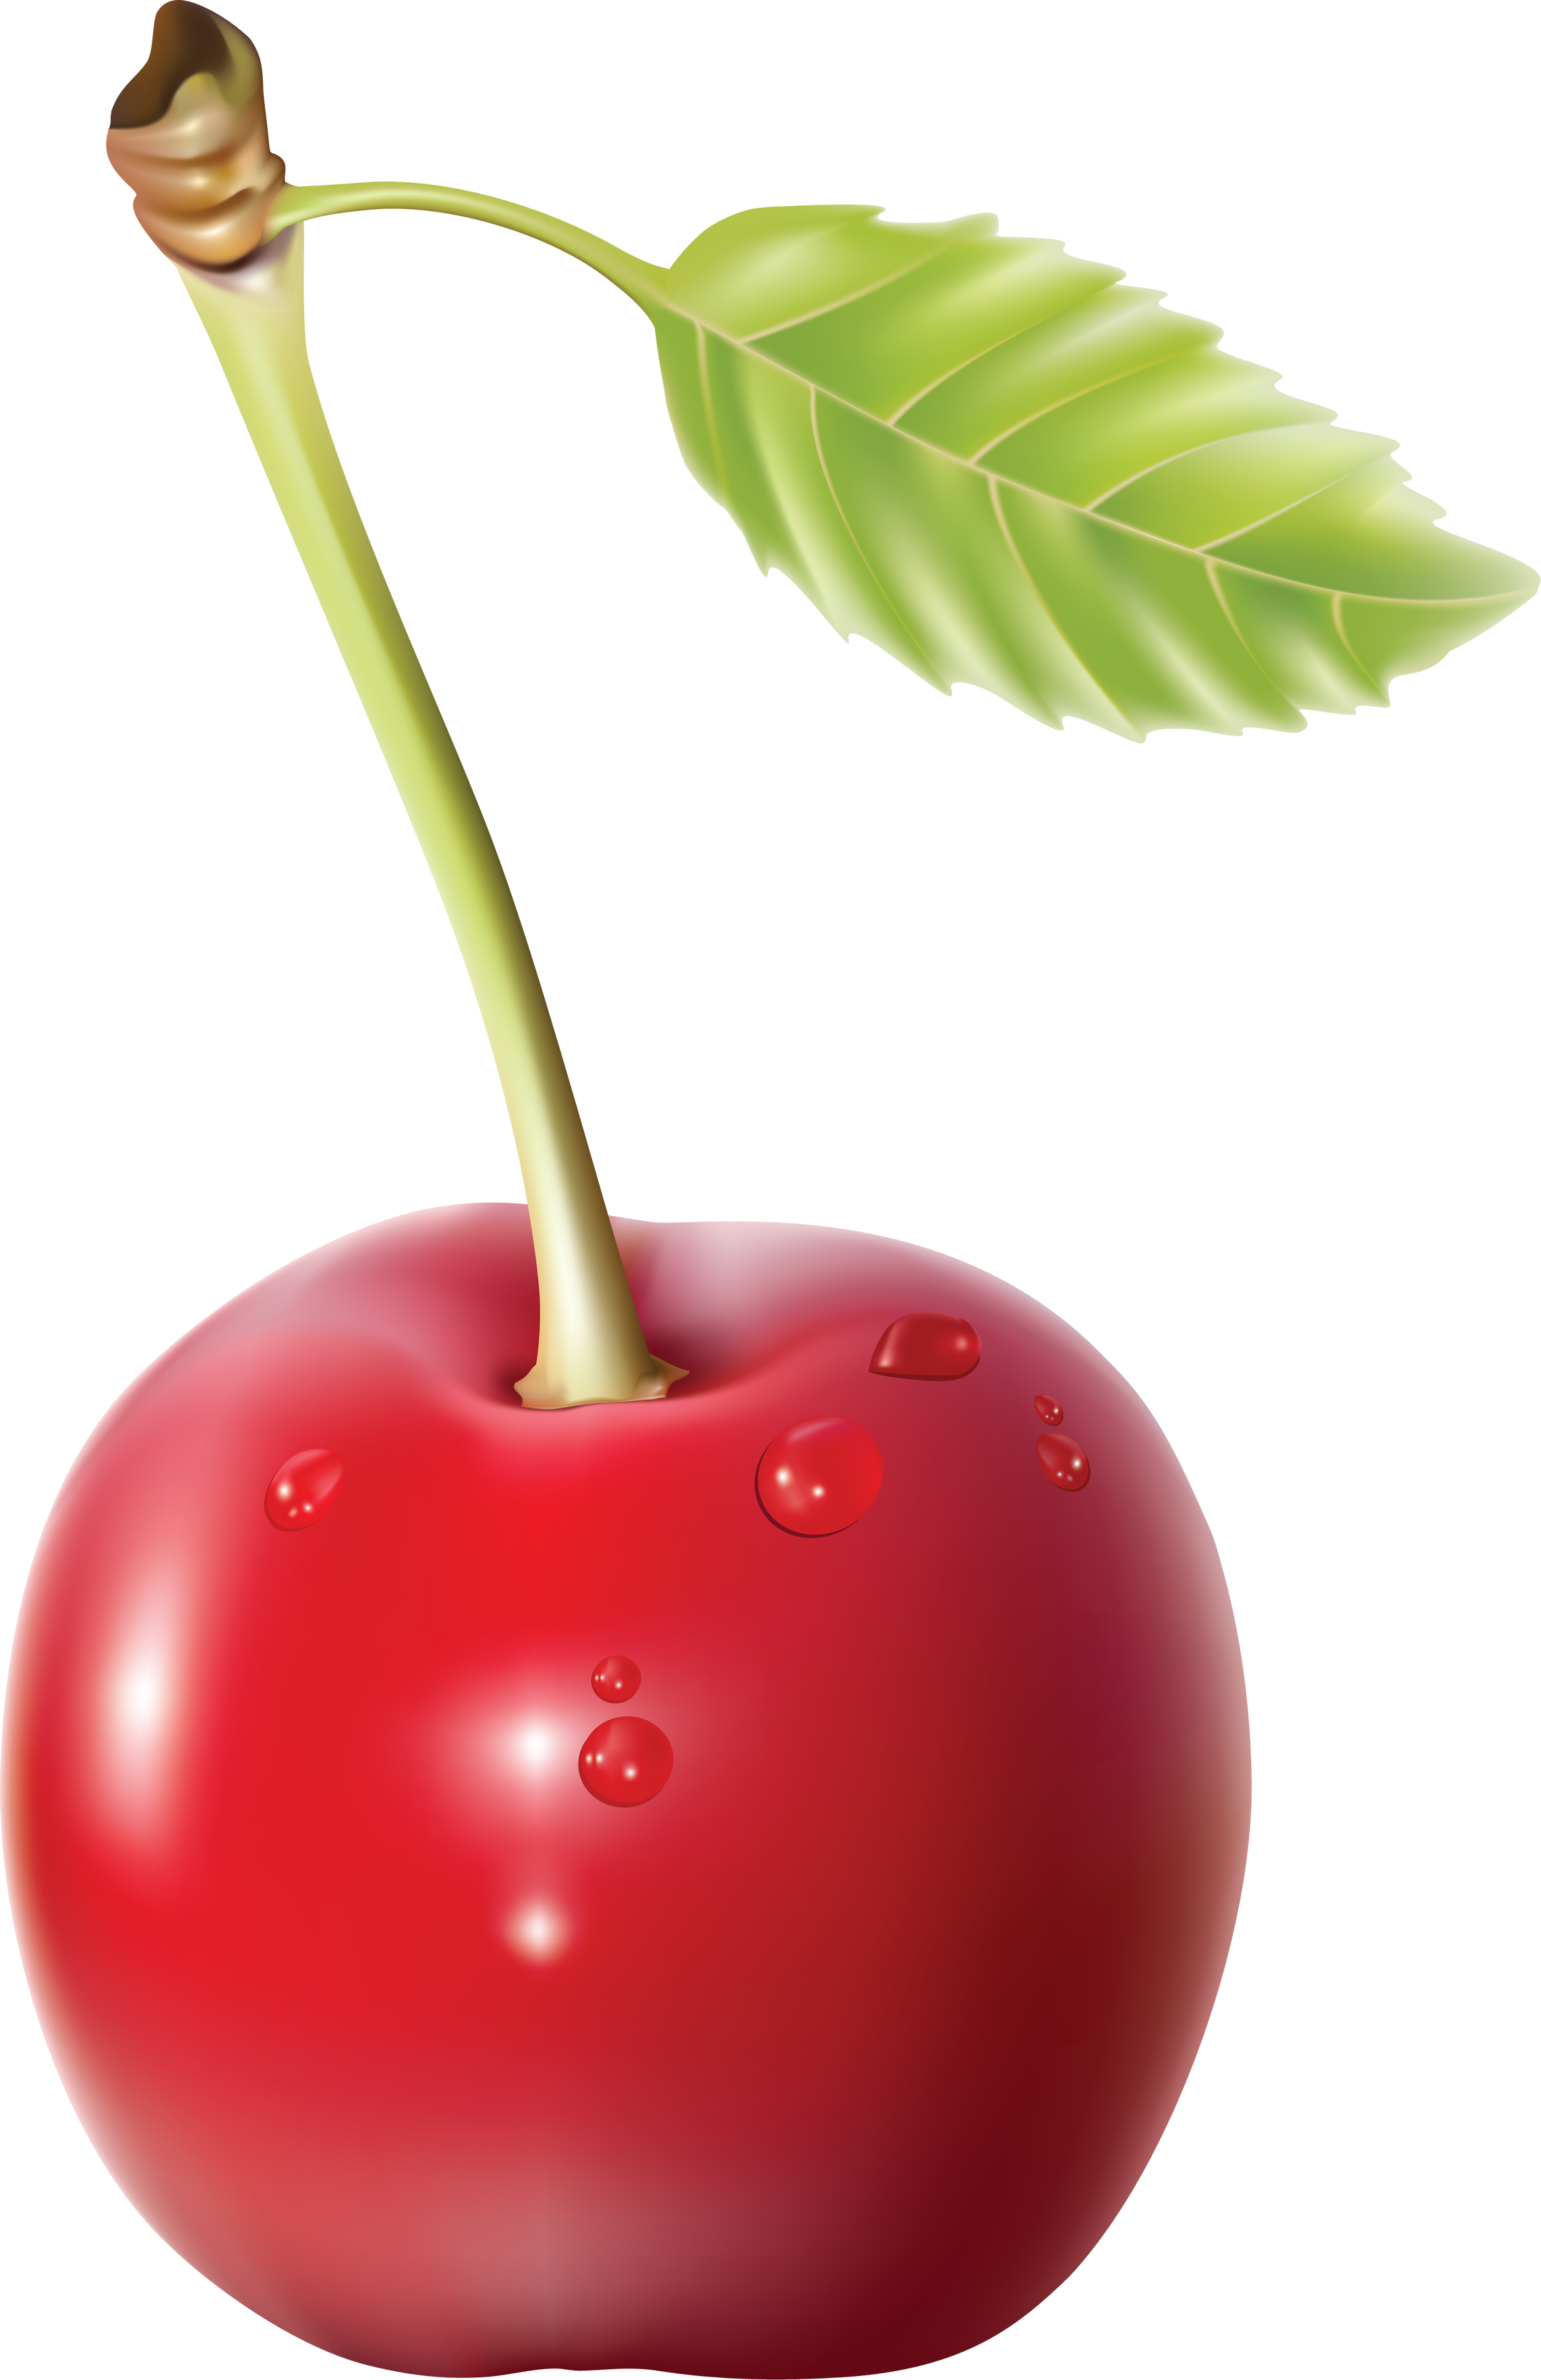 cherry PNG image image with transparent background (With